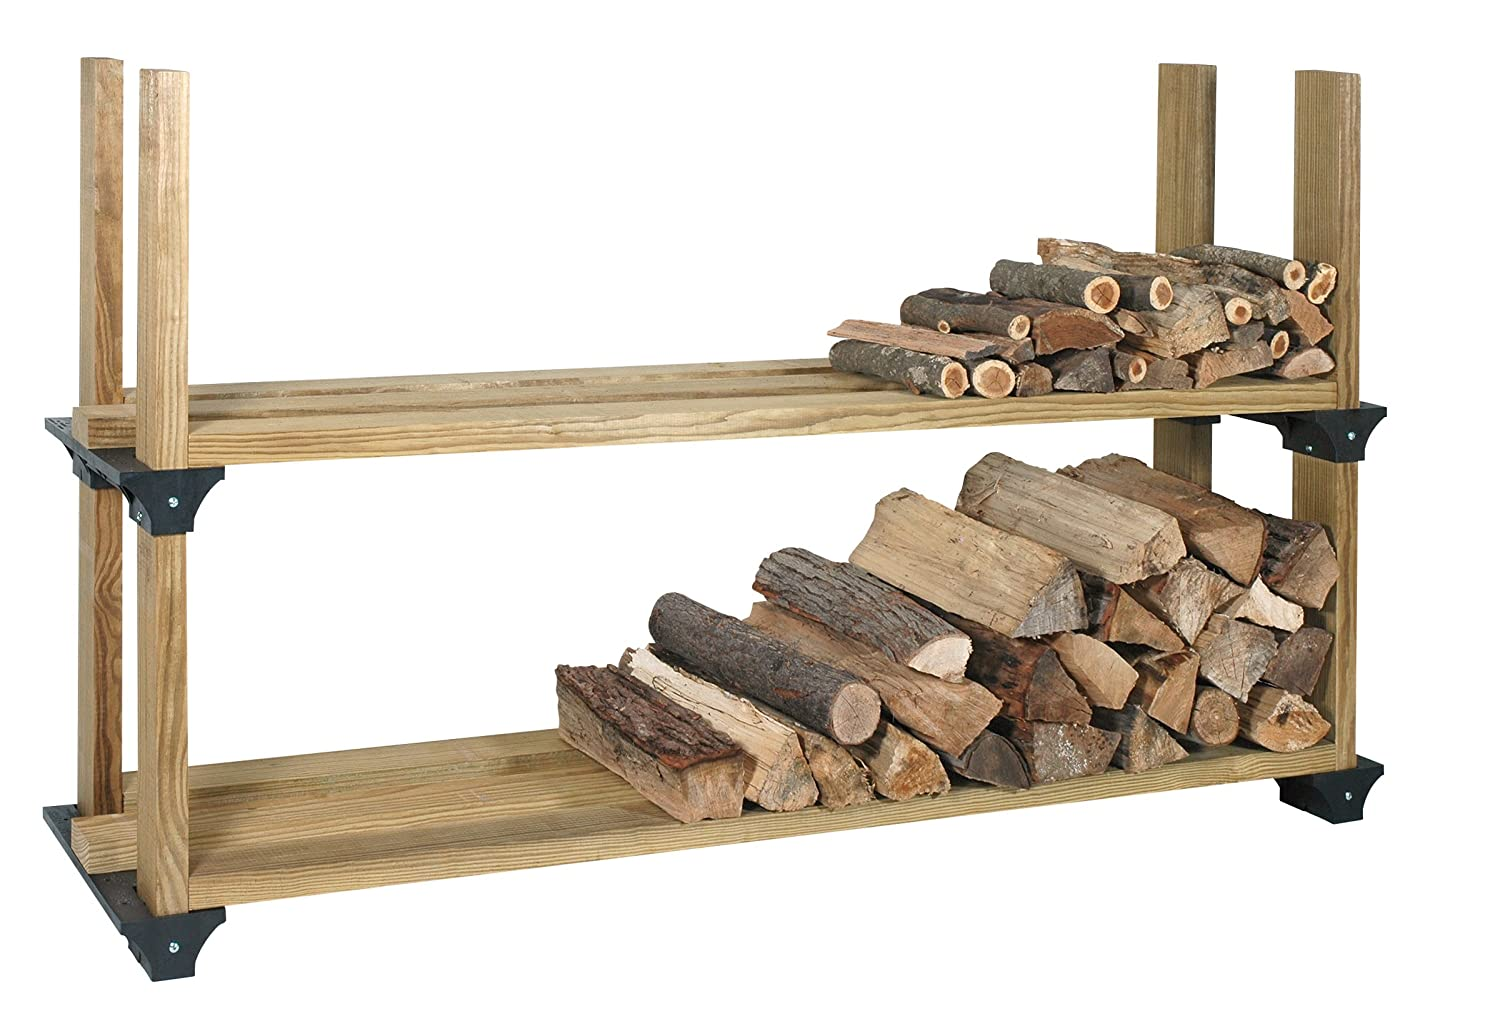 Amazon.com: Hopkins 90144 2x4basics Firewood Rack System, Black ...